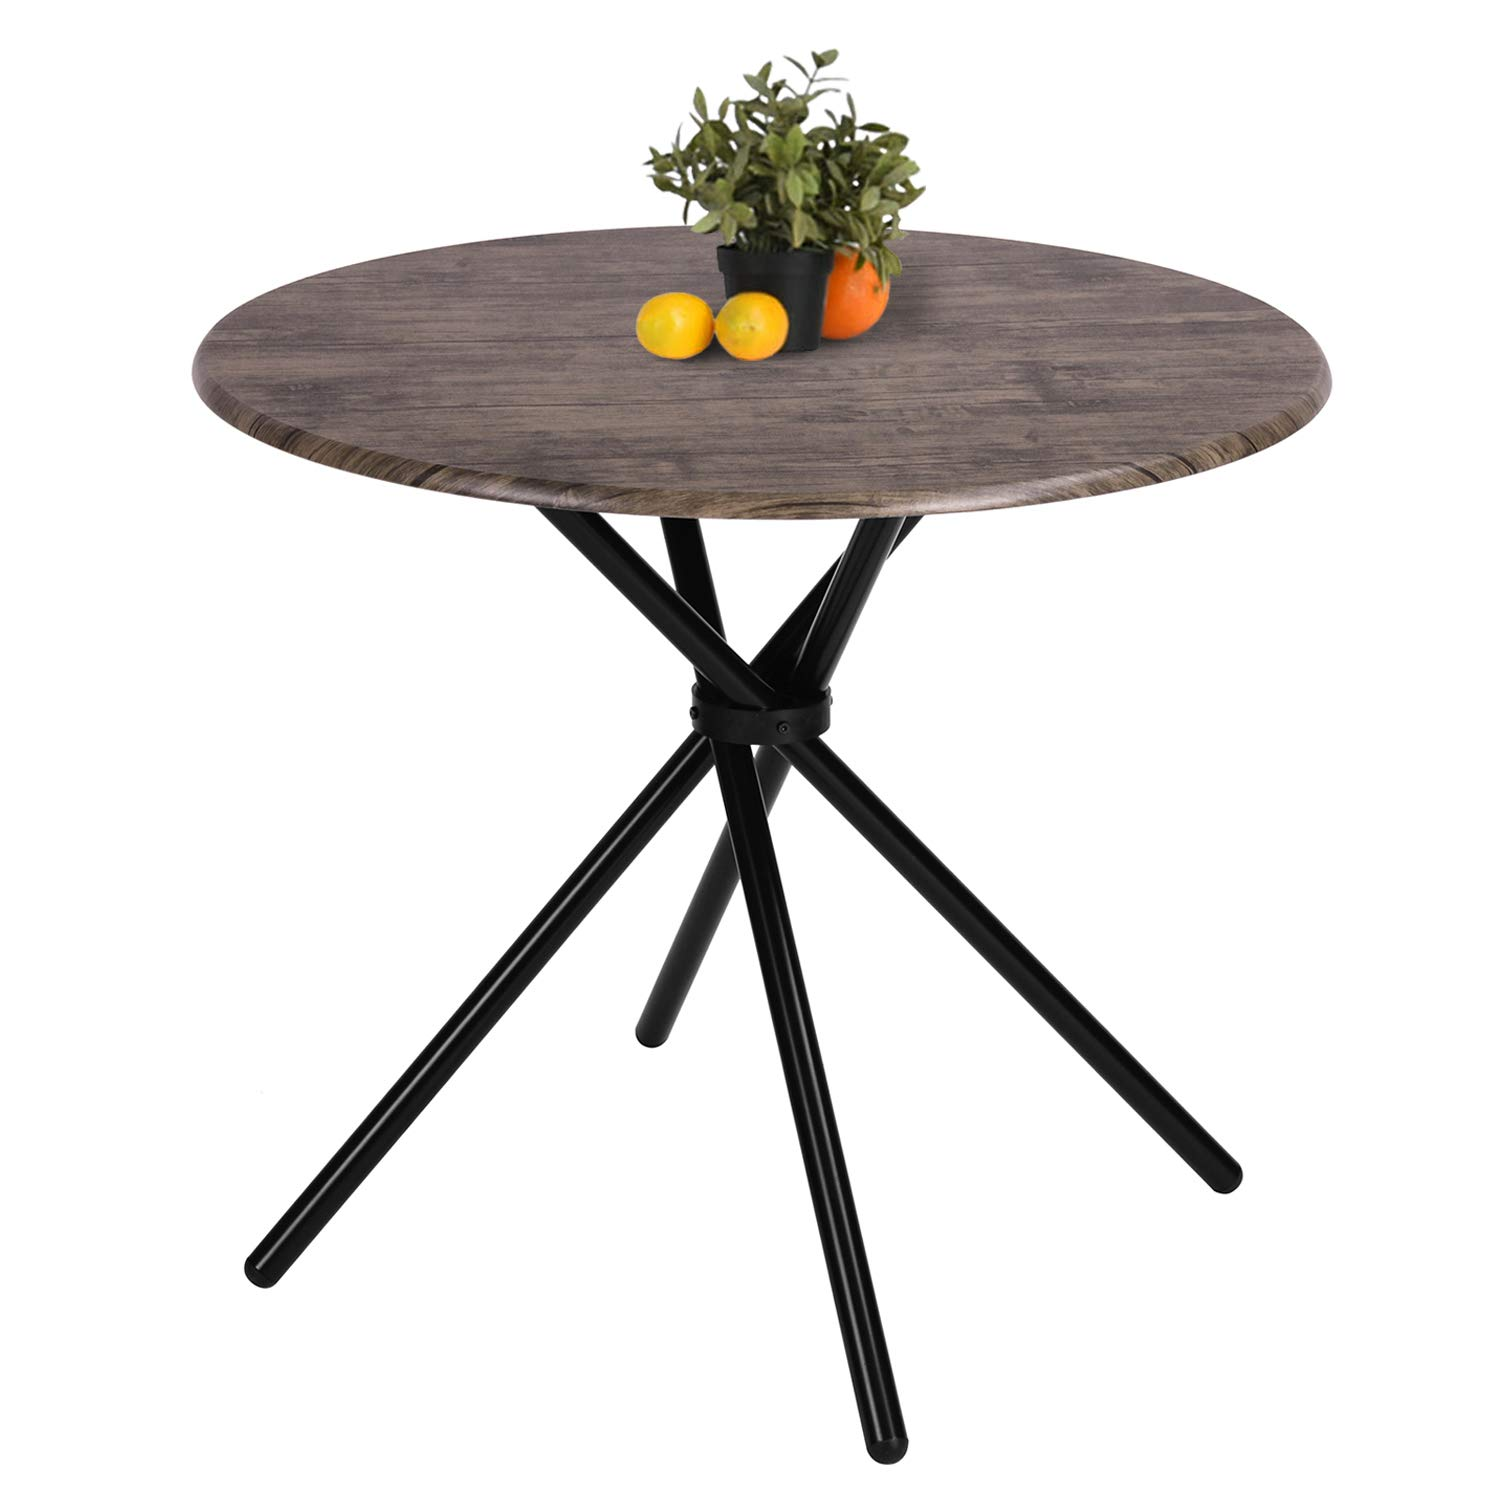 Kitchen Dining Table Industrial Brown Round Mid-Century Wood Coffee Table Office Home Easy-Assembly 31.4x31.4x29.5Inches for for Living Drawing Receiving Room by Coavas